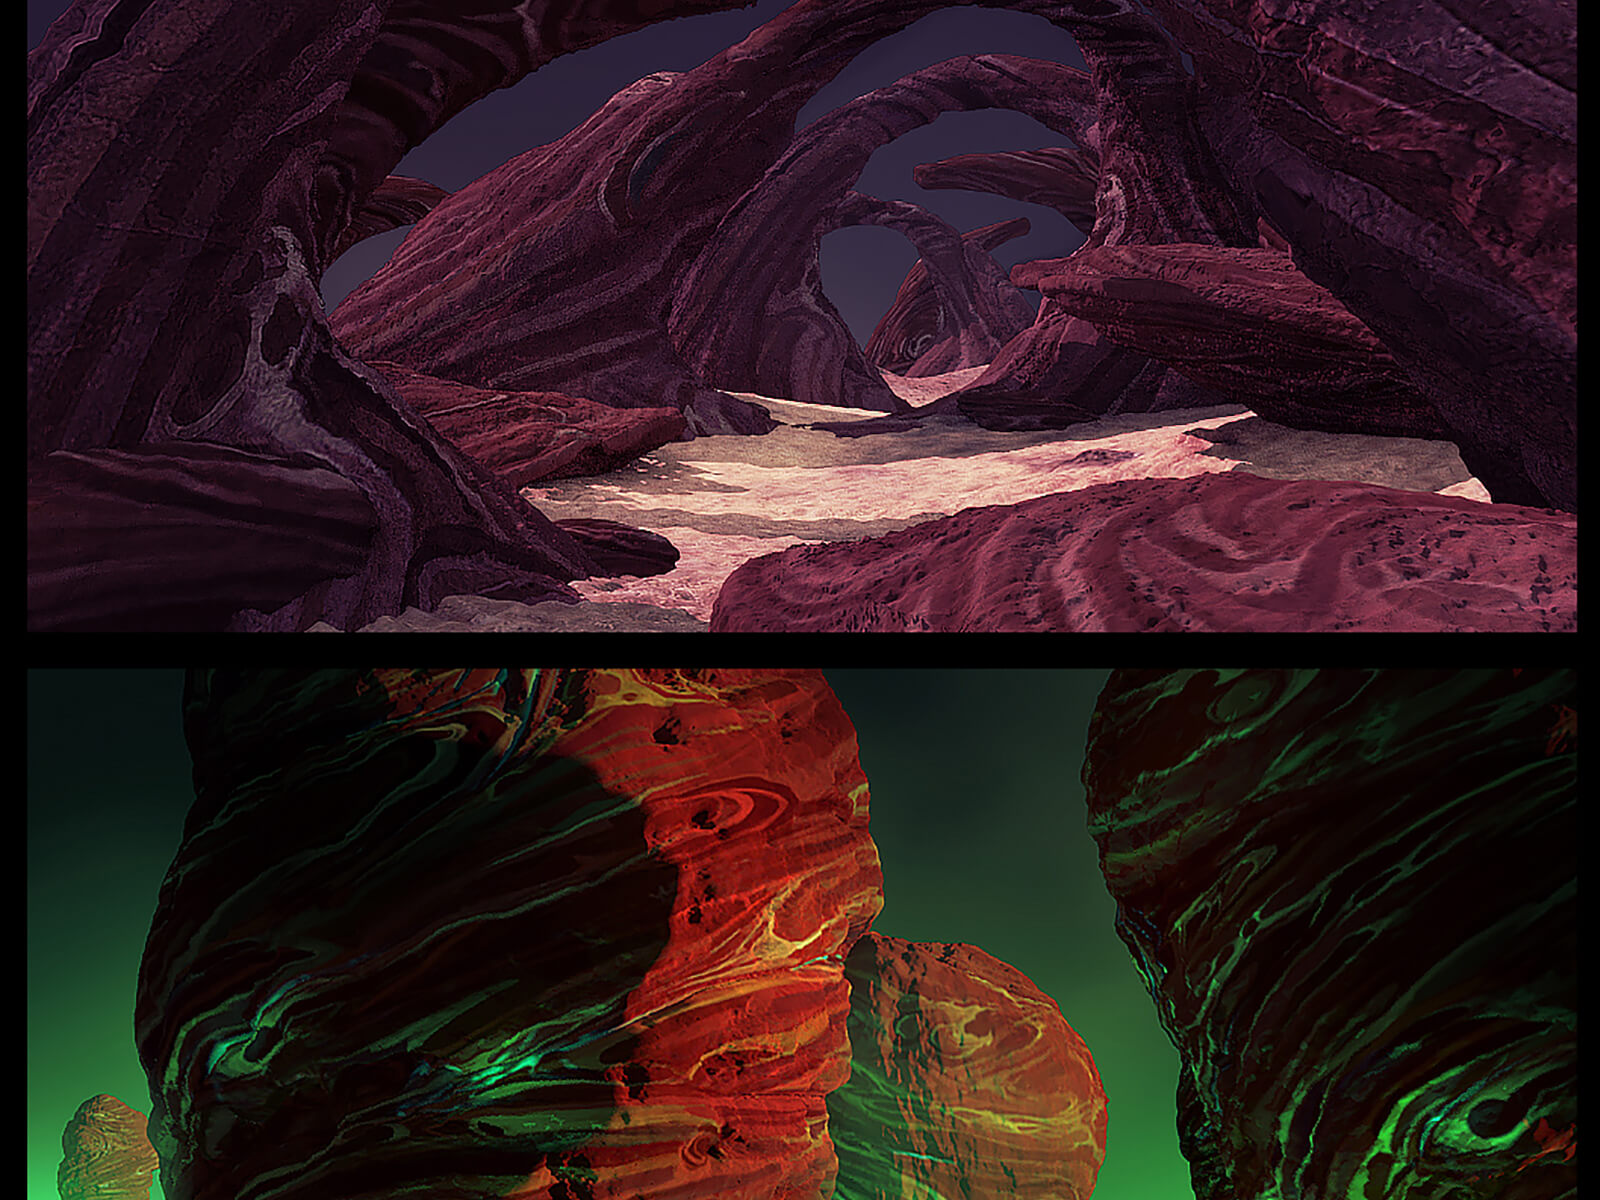 Two alien desert landscapes, one depicting mysterious rocky arches, the other colorful stone outcroppings.